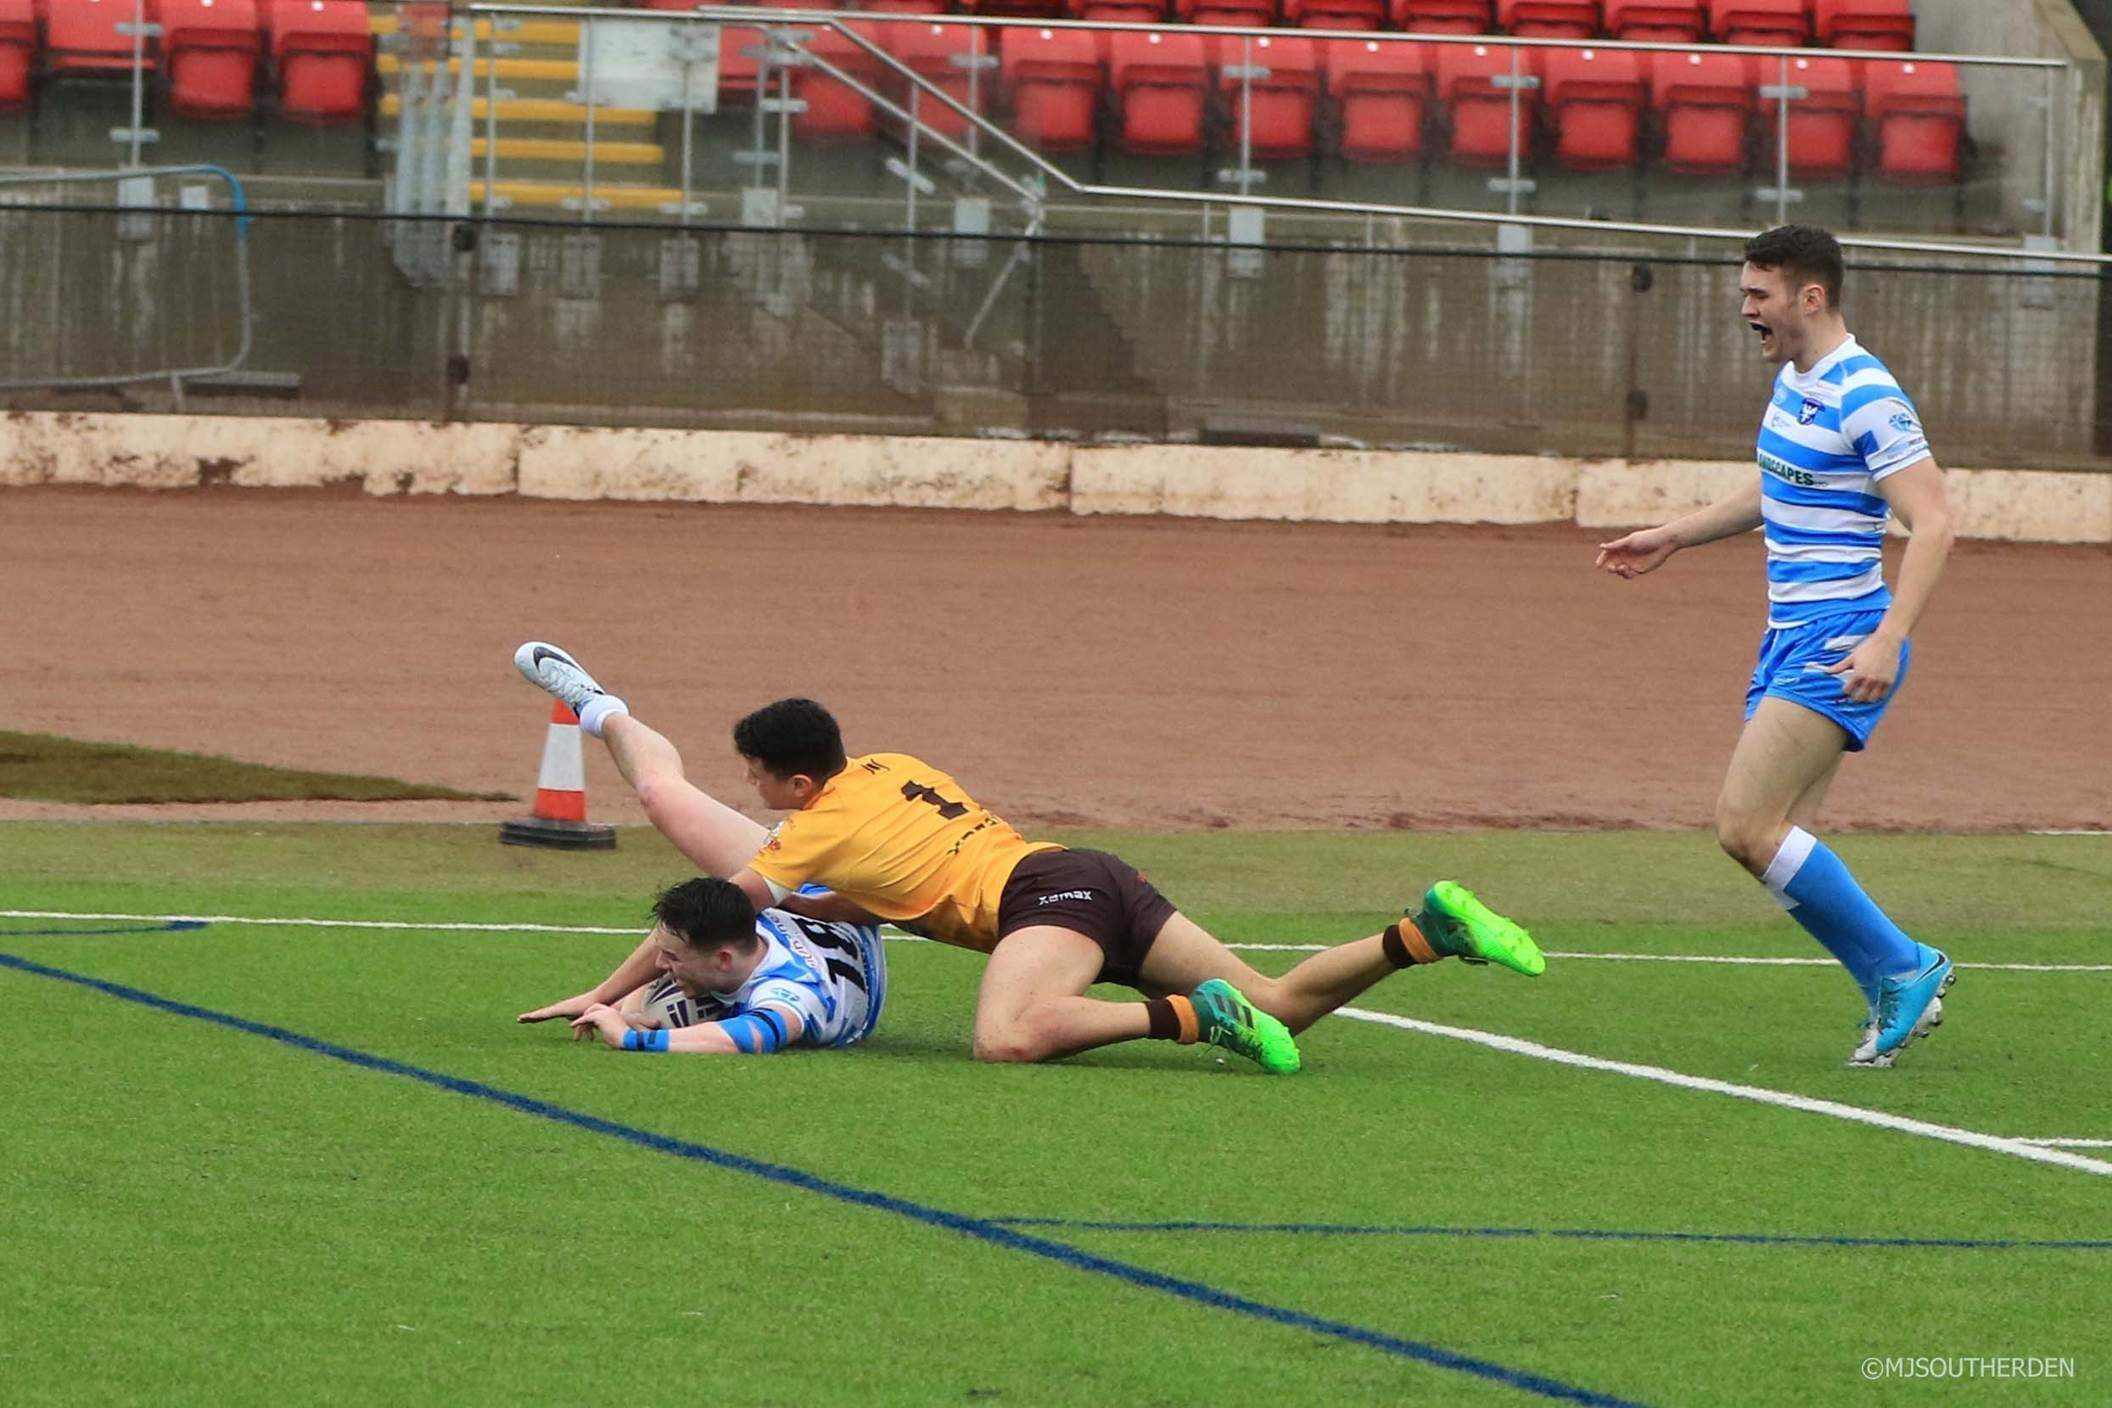 Action from Bury Broncos' game against Manchester Rnagers